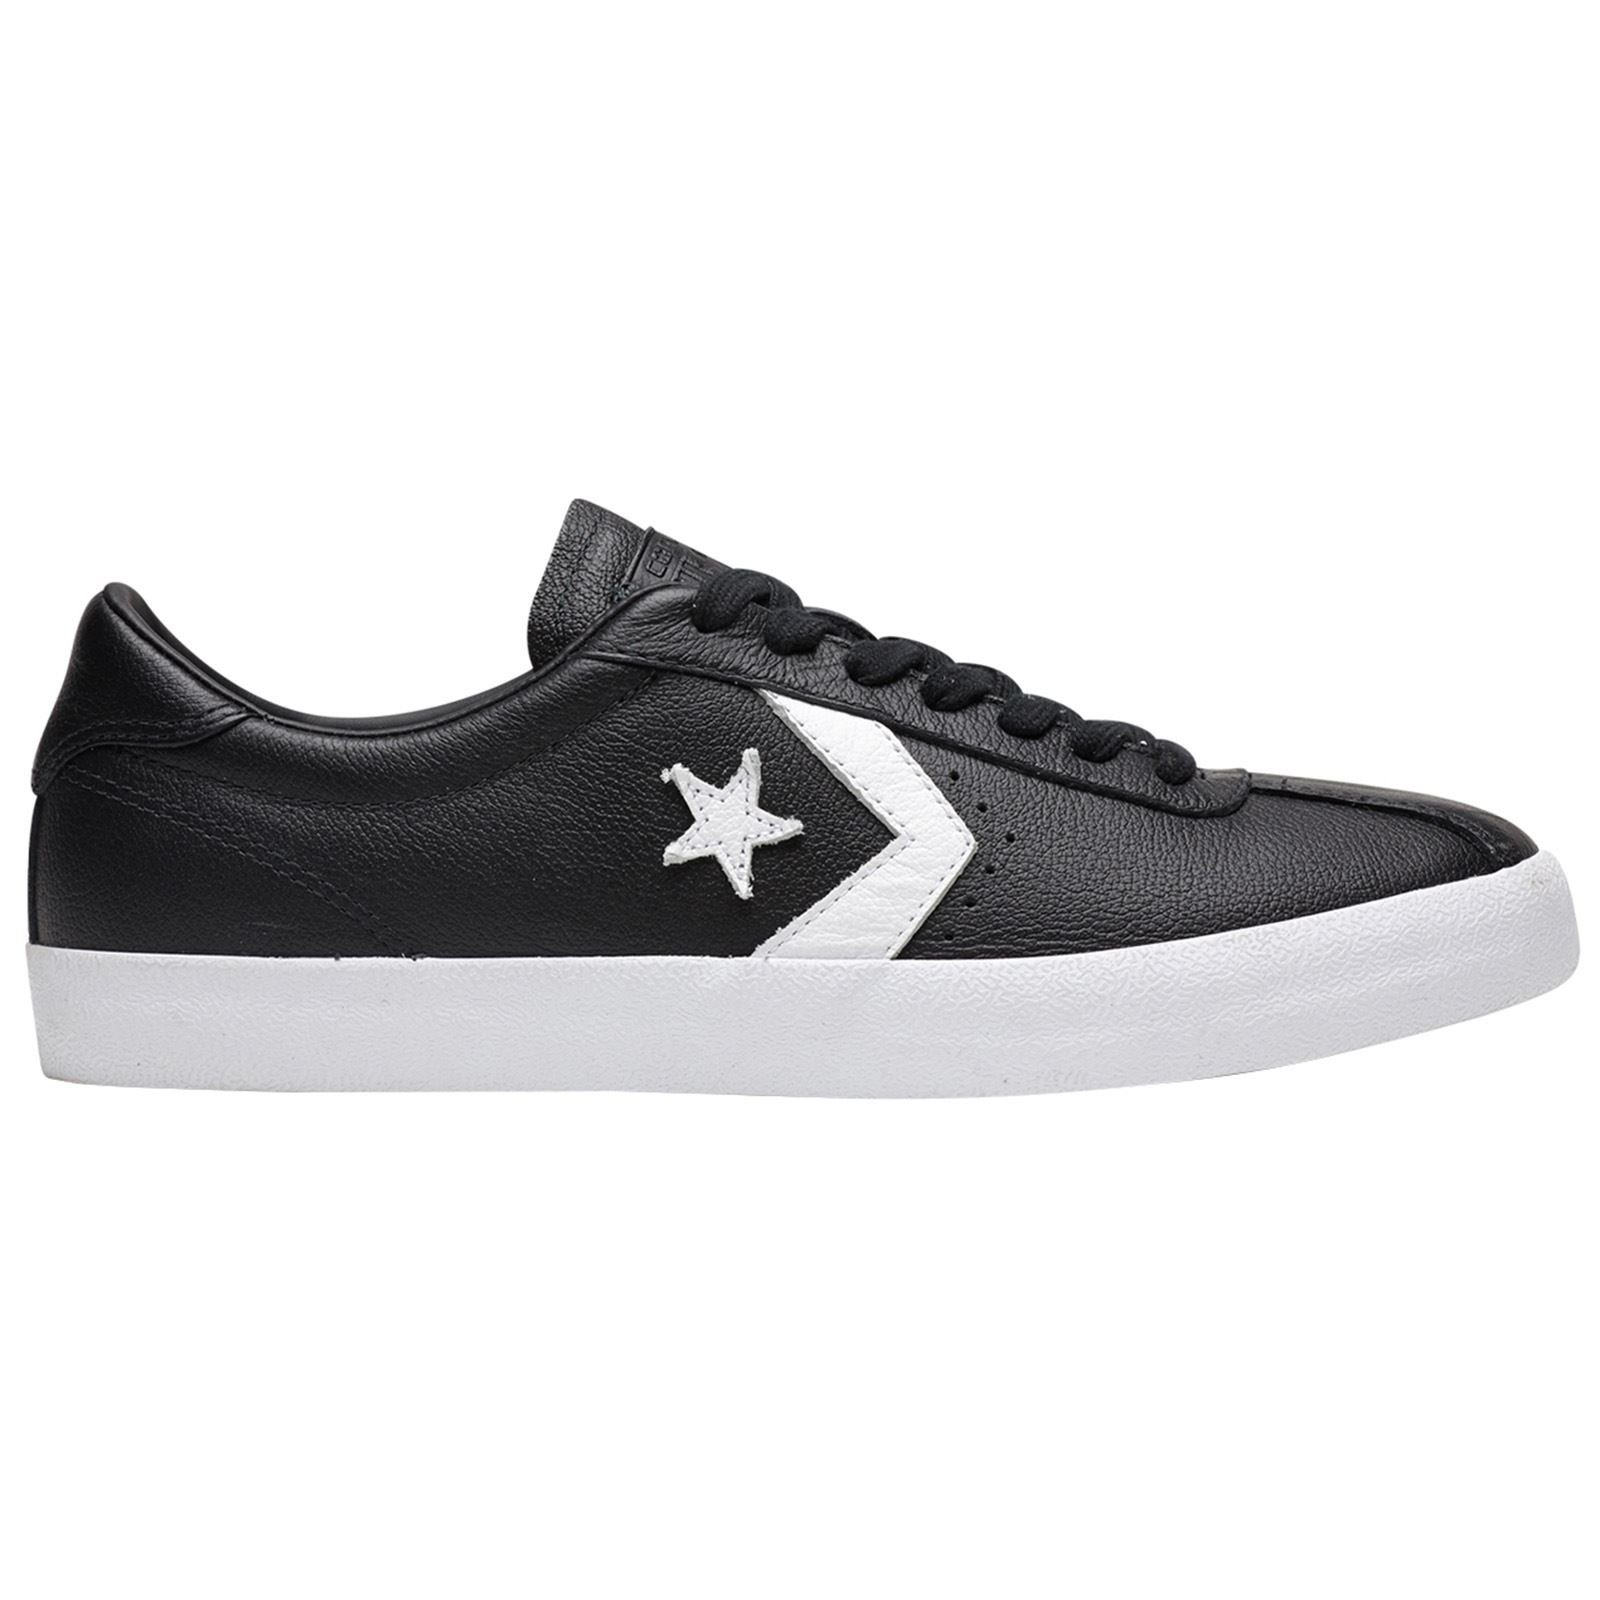 Converse Mens Breakpoint Leather Low Top Lace